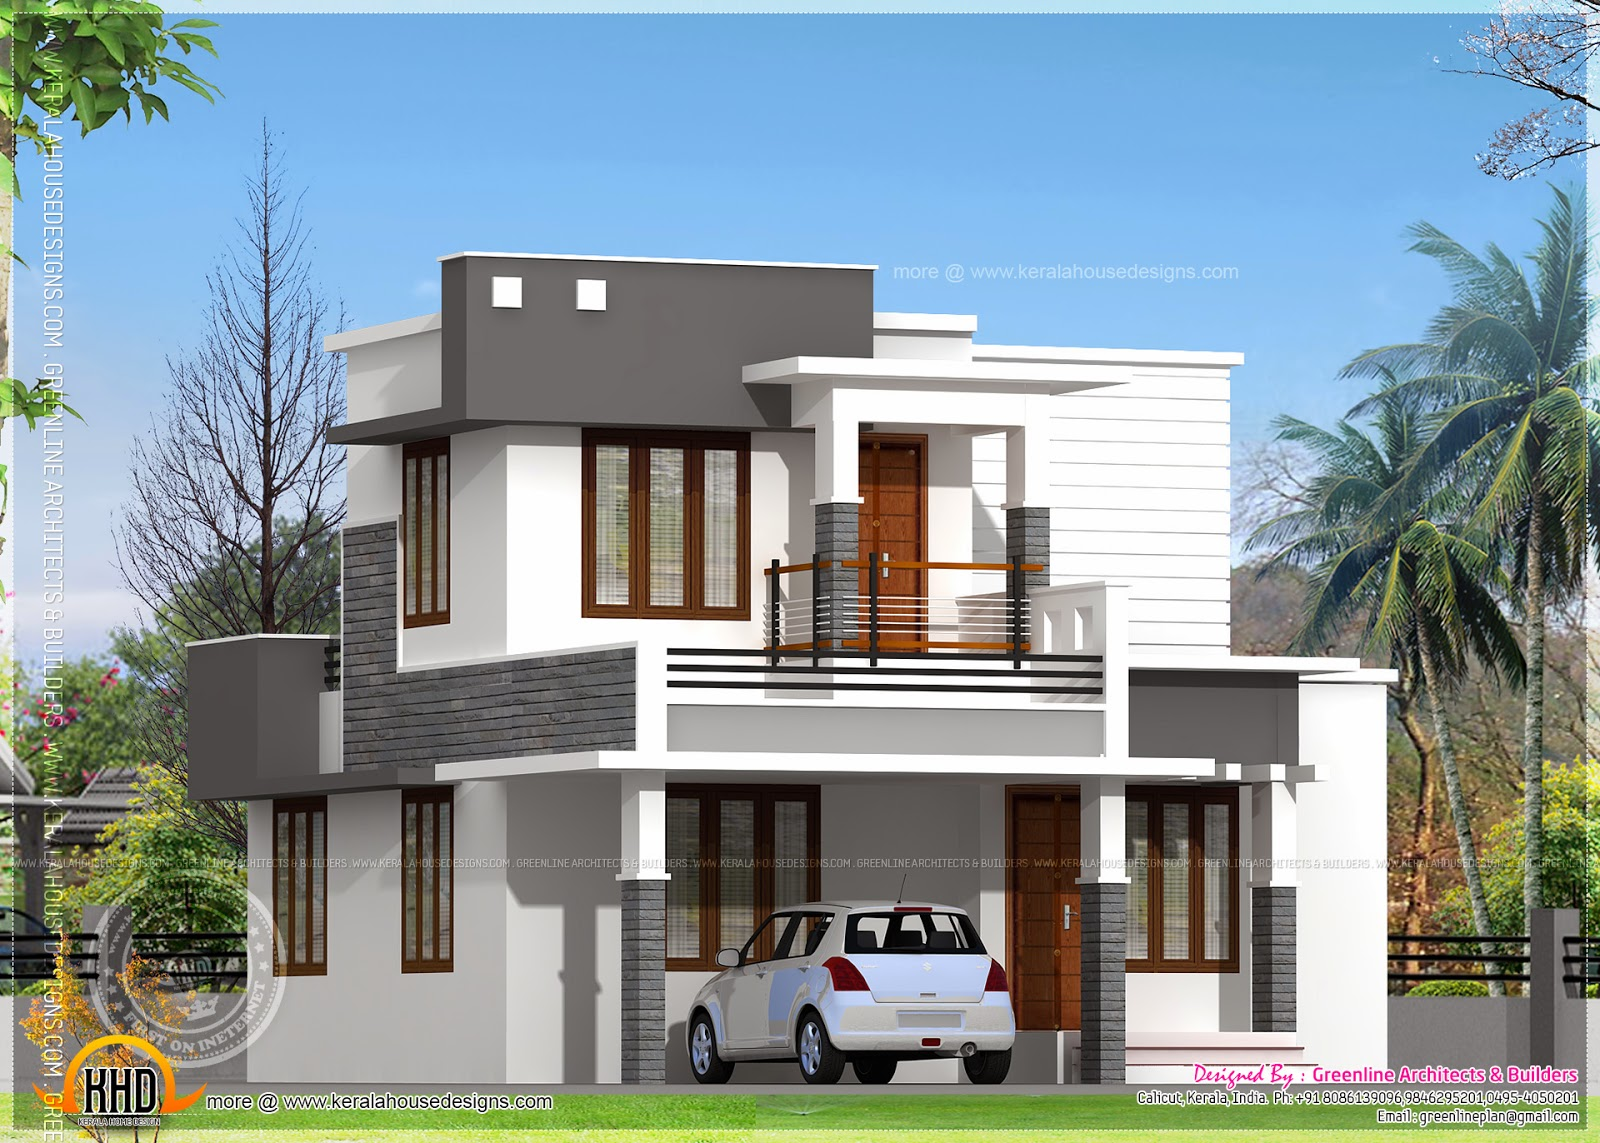 Small flat roof double stories house kerala home design for Small house roof design pictures